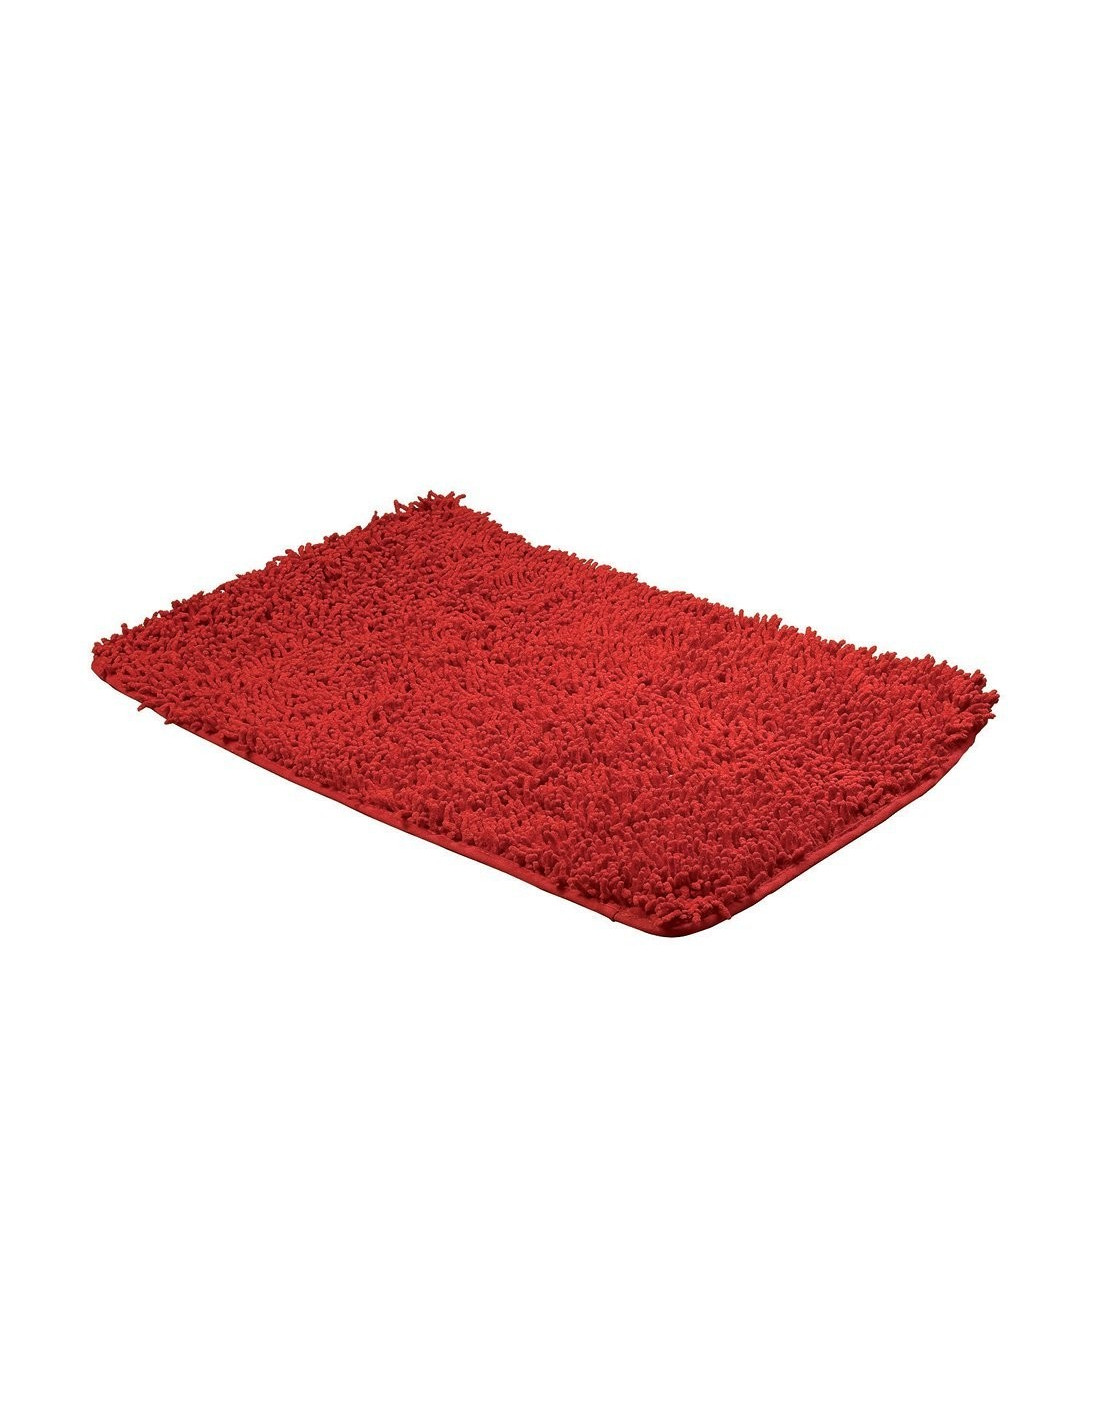 frandis tapis de bain maille chenille coton rouge 50x80cm. Black Bedroom Furniture Sets. Home Design Ideas